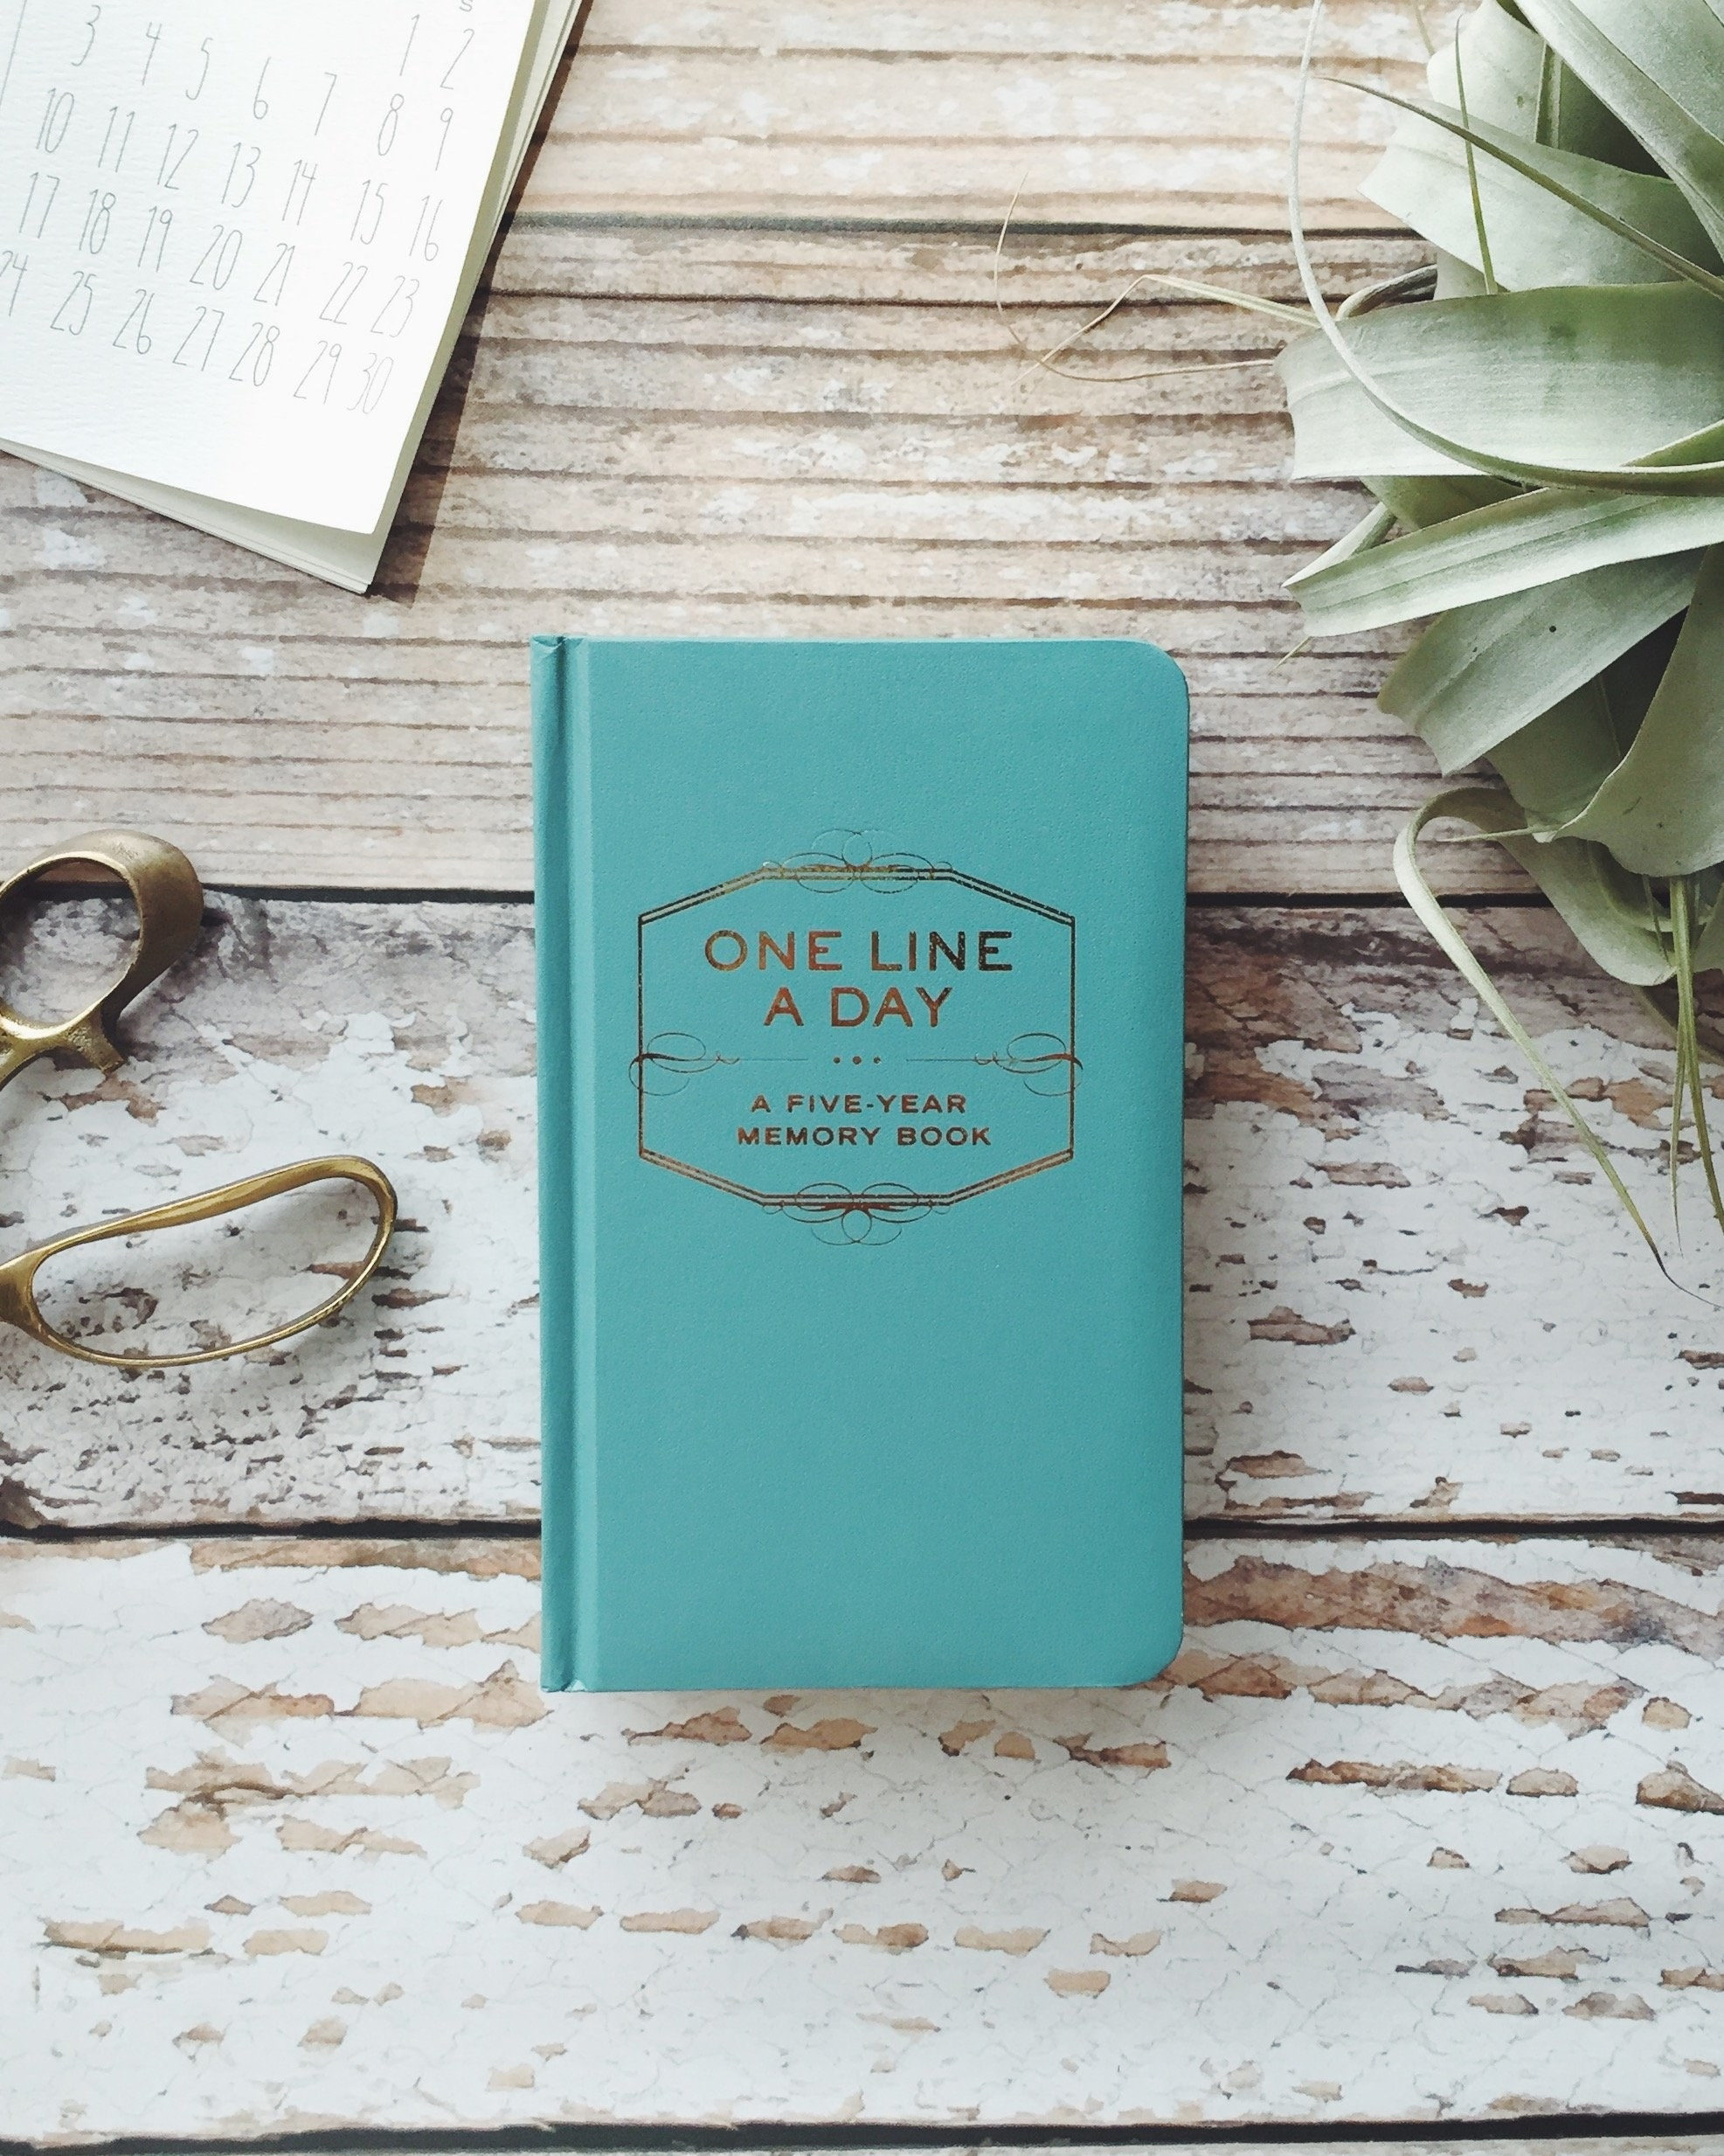 the notebook that says one line a day